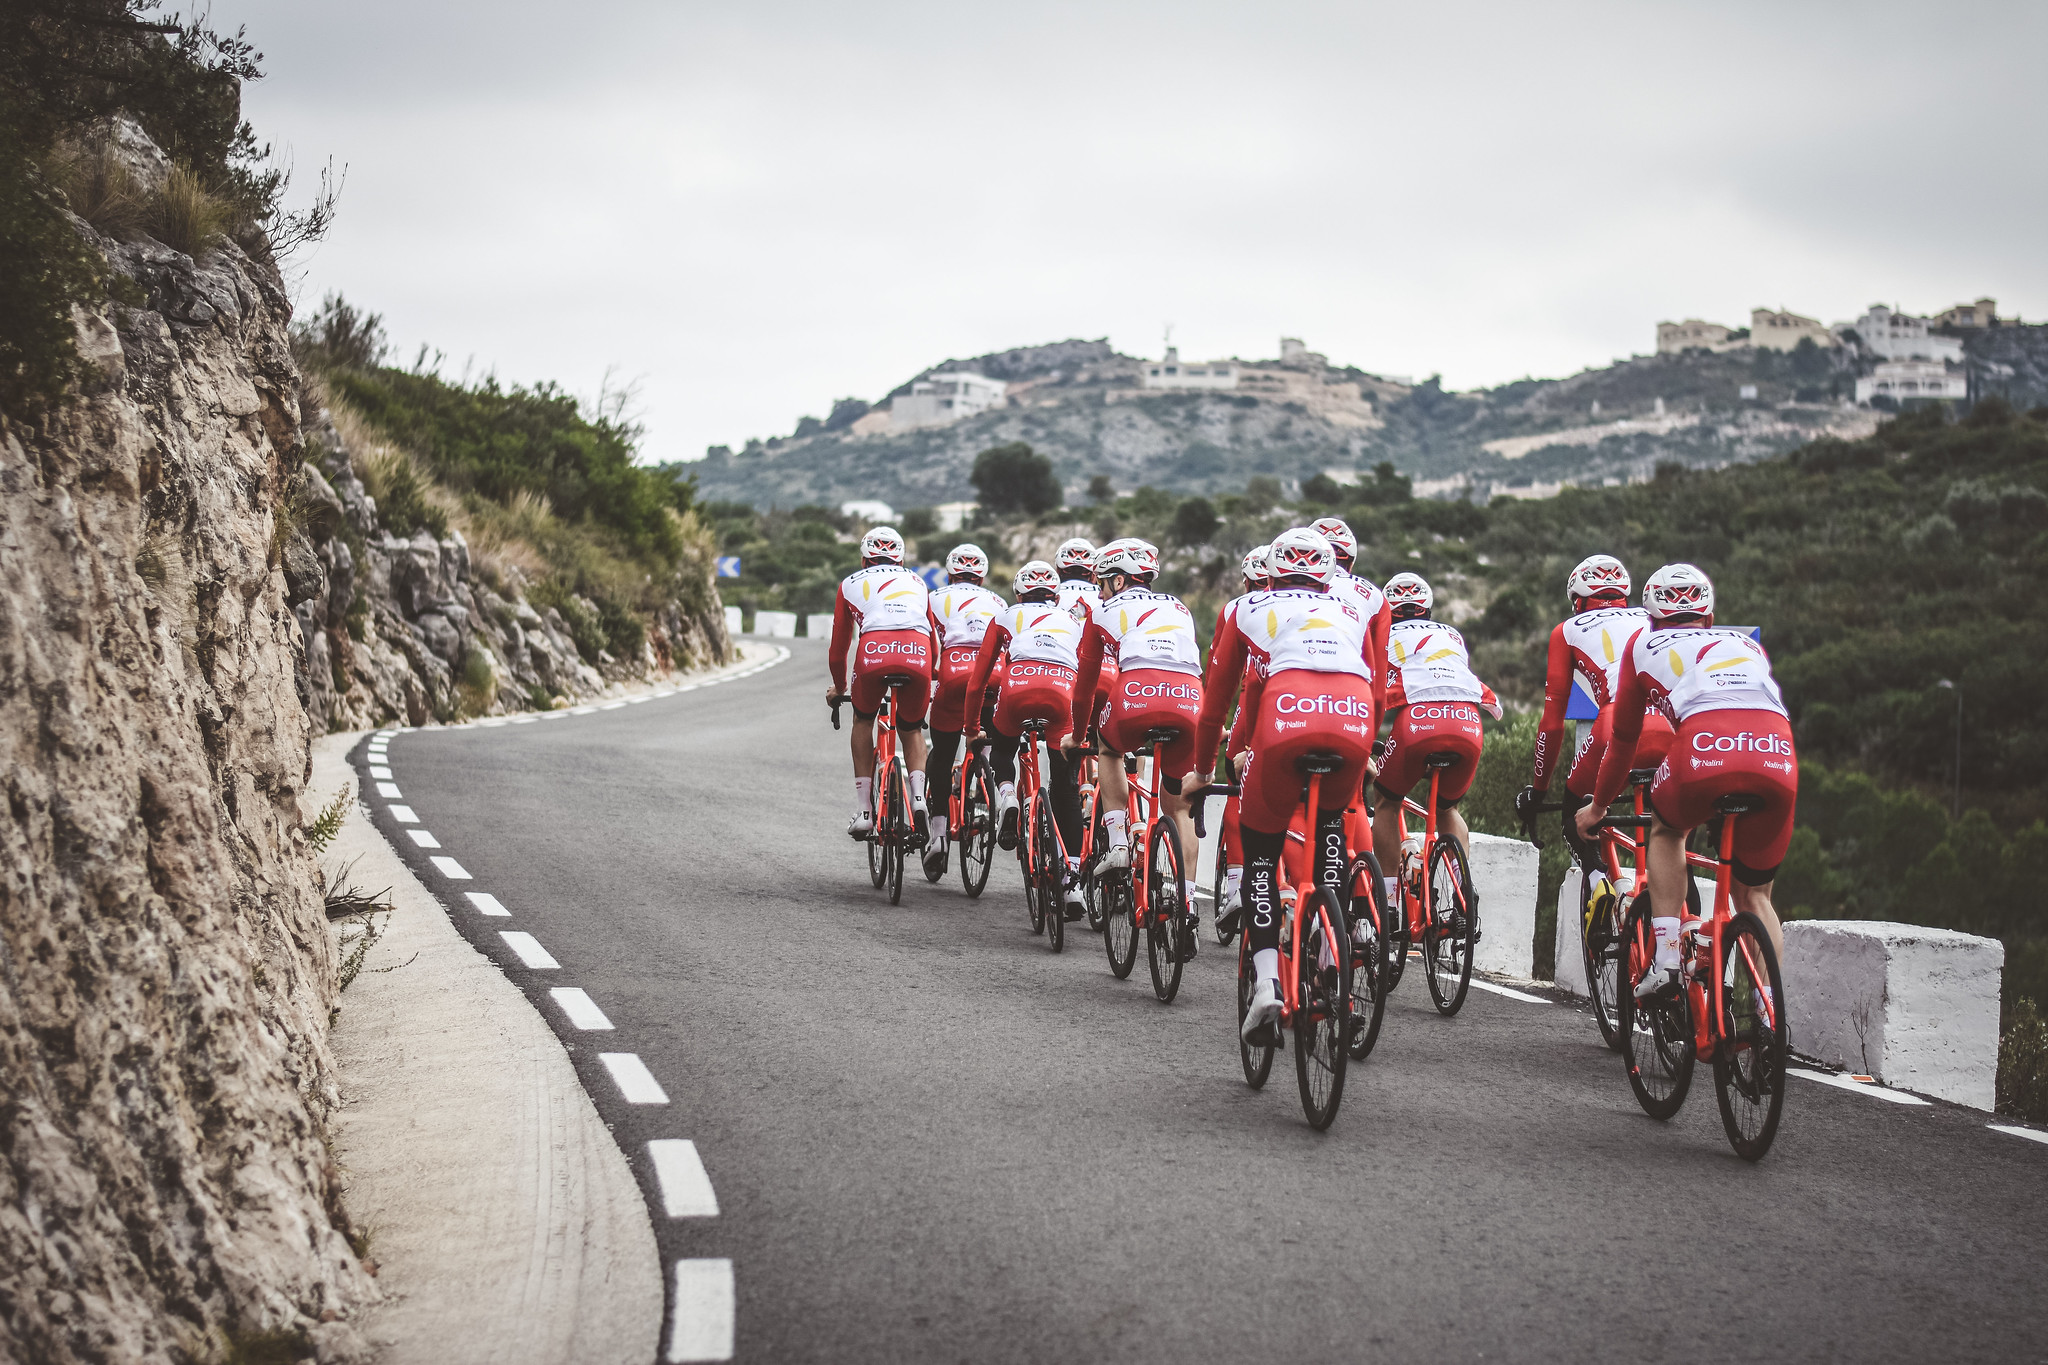 UAE announces 6 more virus cases linked to abandoned cycle tour